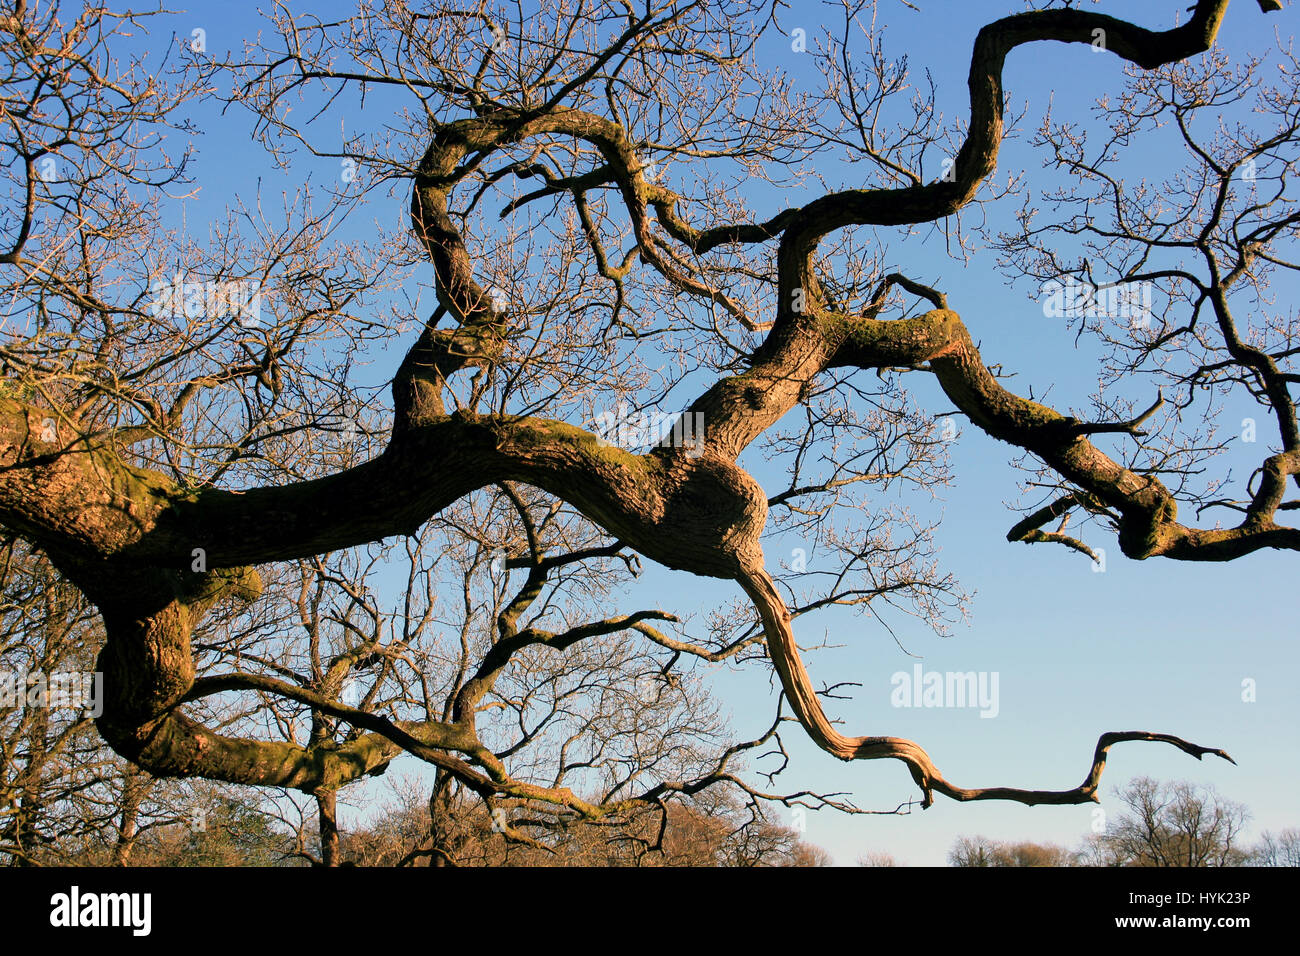 Oak Wood Branches ~ Ancient oak tree branches twisted against a blue